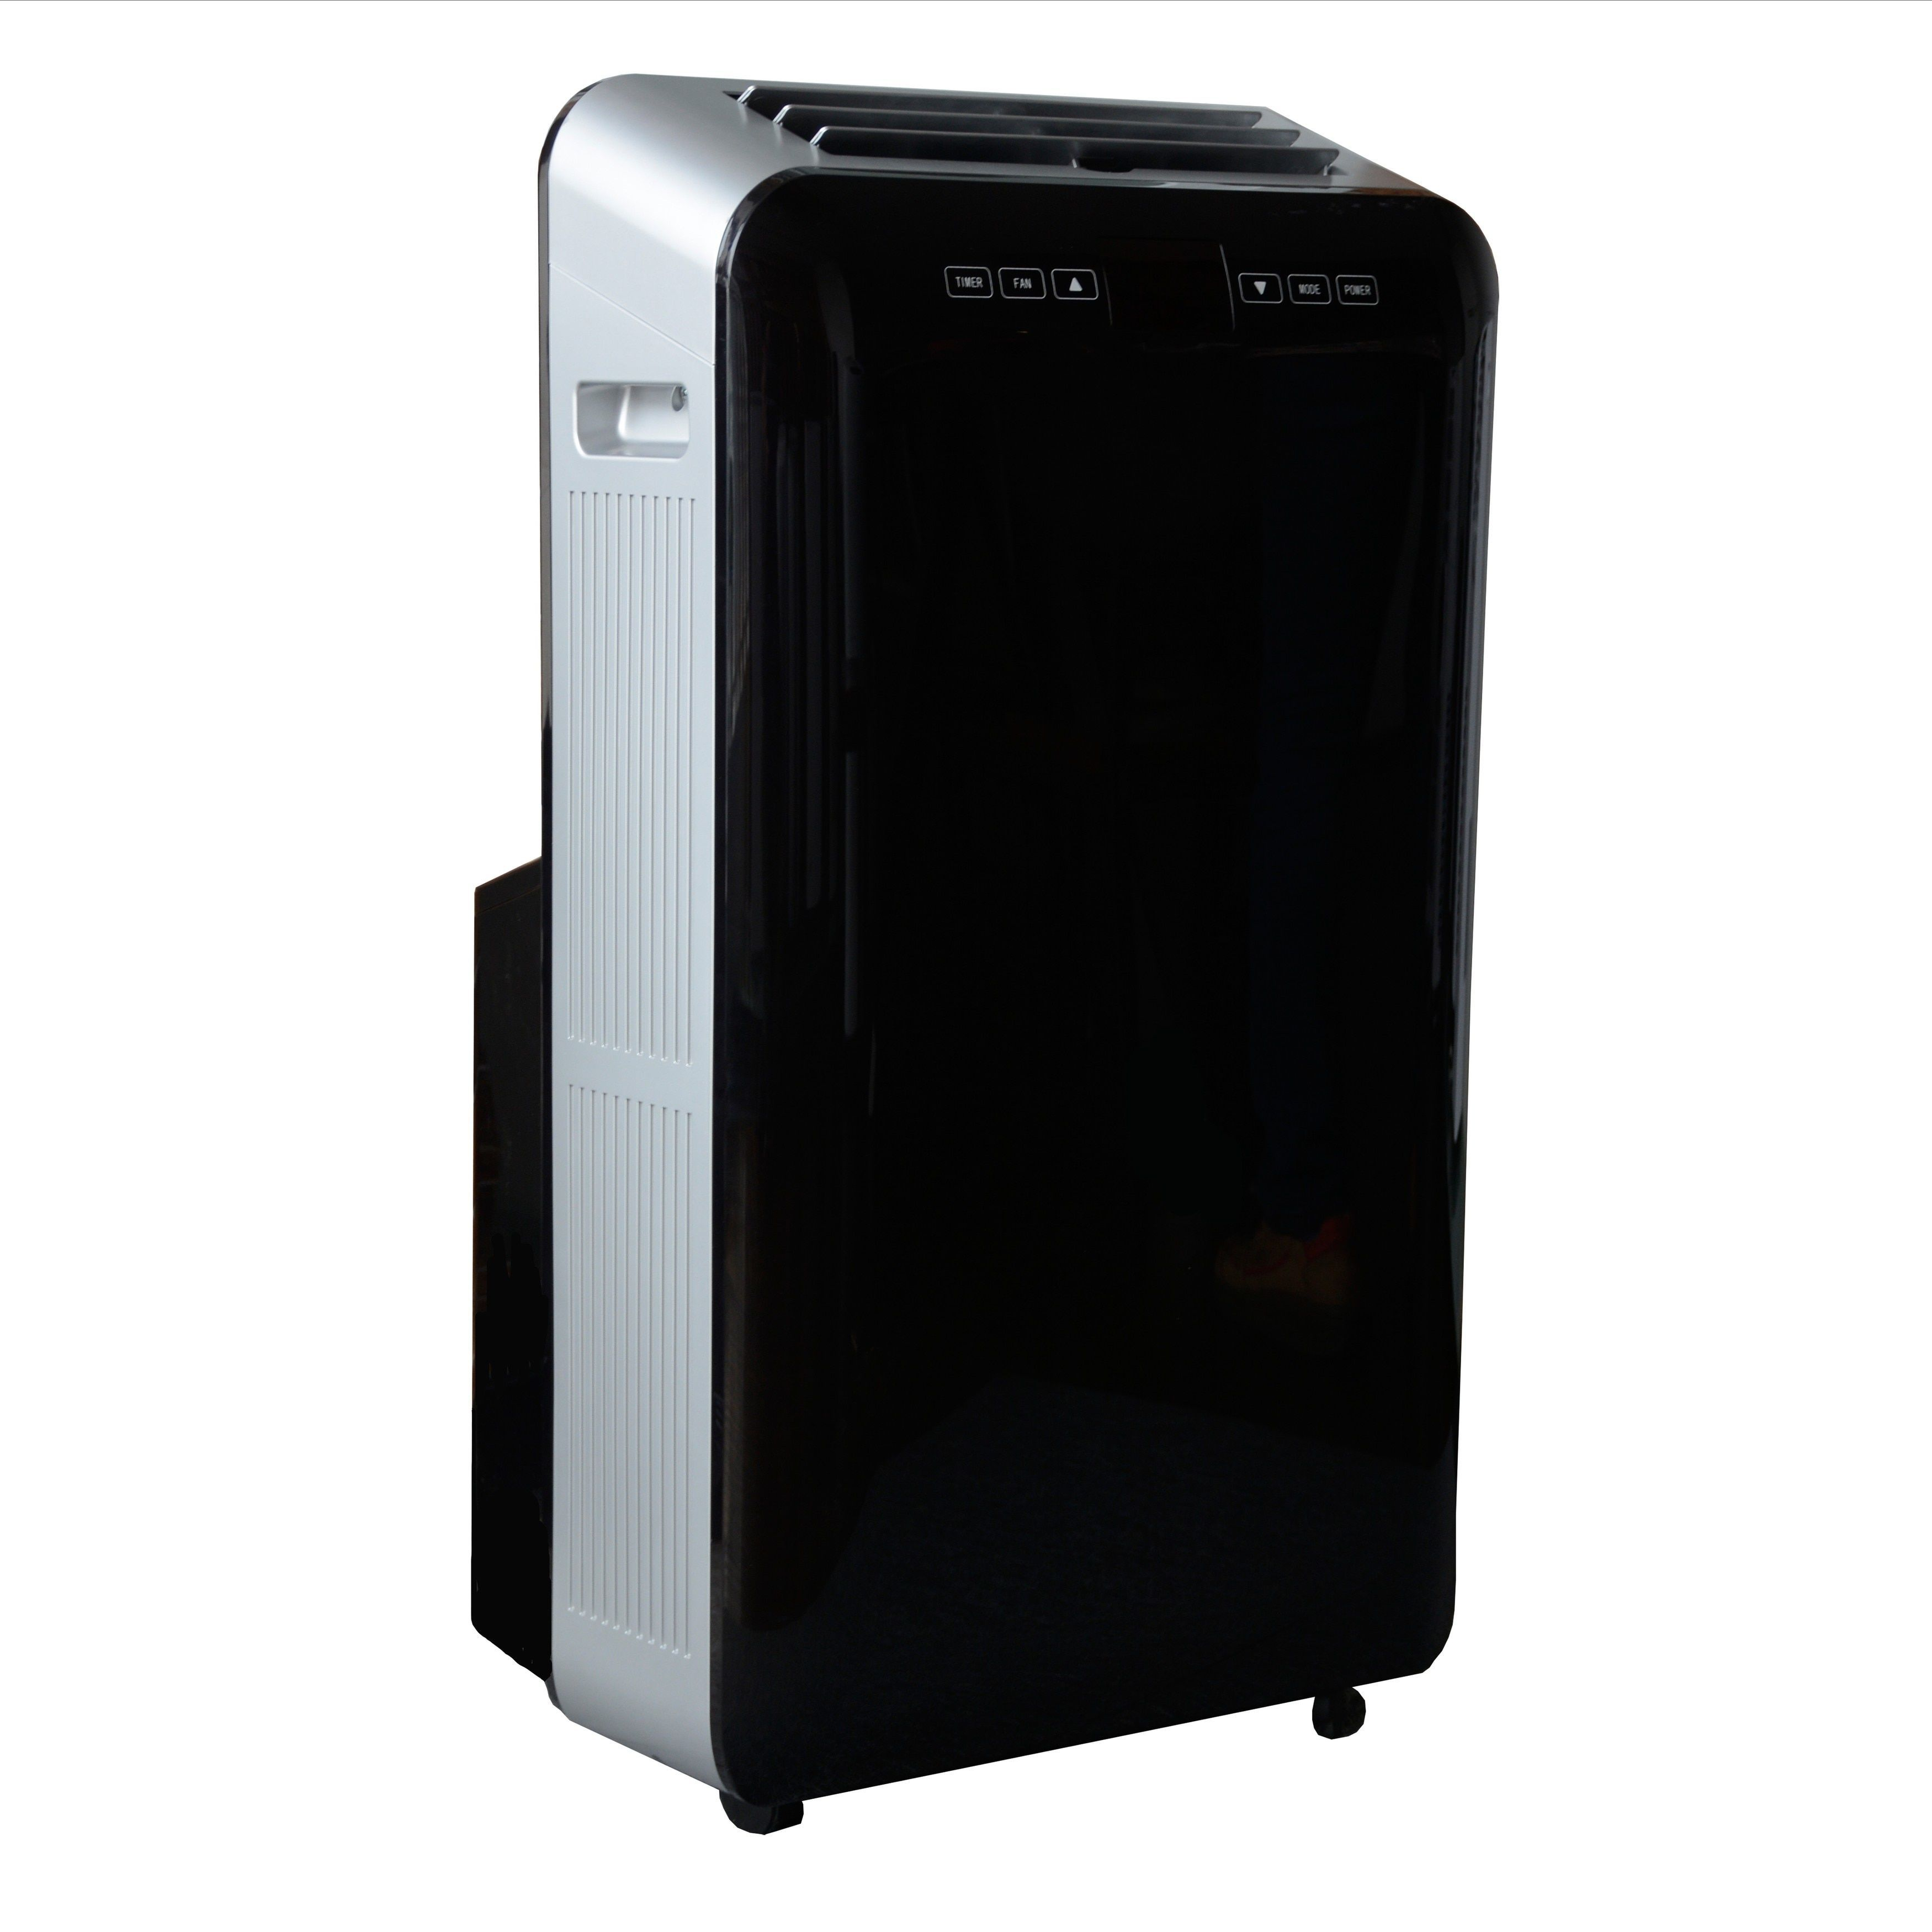 Dehumidifiers   CCH Products YPV6 14C 14 000 BTU 3 in 1 Portable Air  Conditioner. CCH Products YPV6 14C 14 000 BTU 3 in 1 Portable Air Conditioner